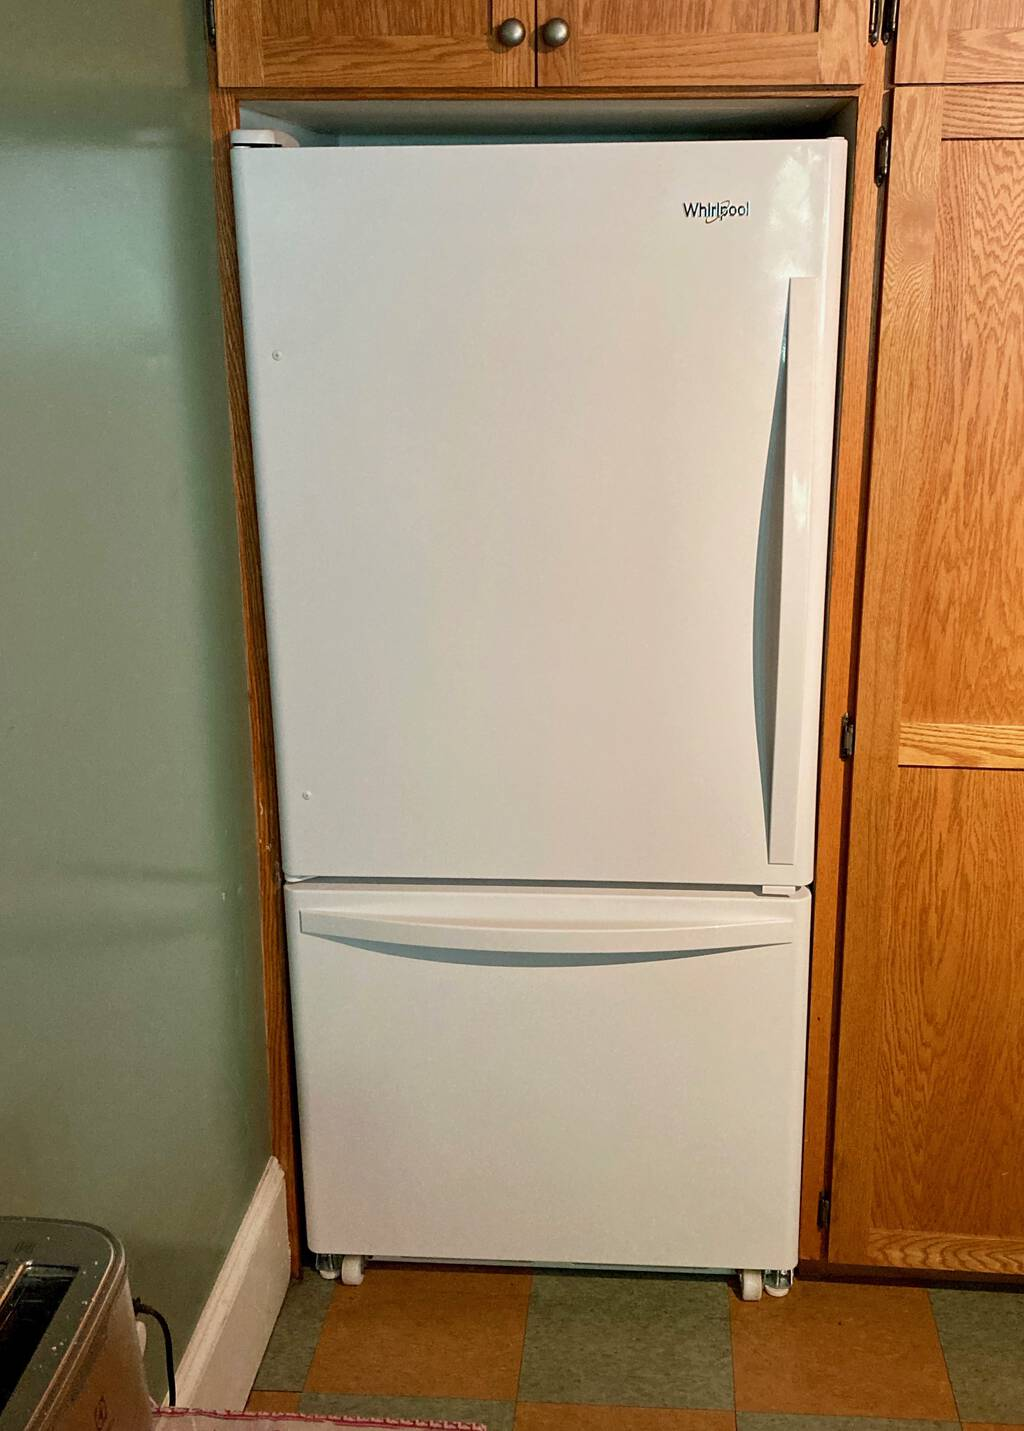 Photo of our new Whirlpool fridge